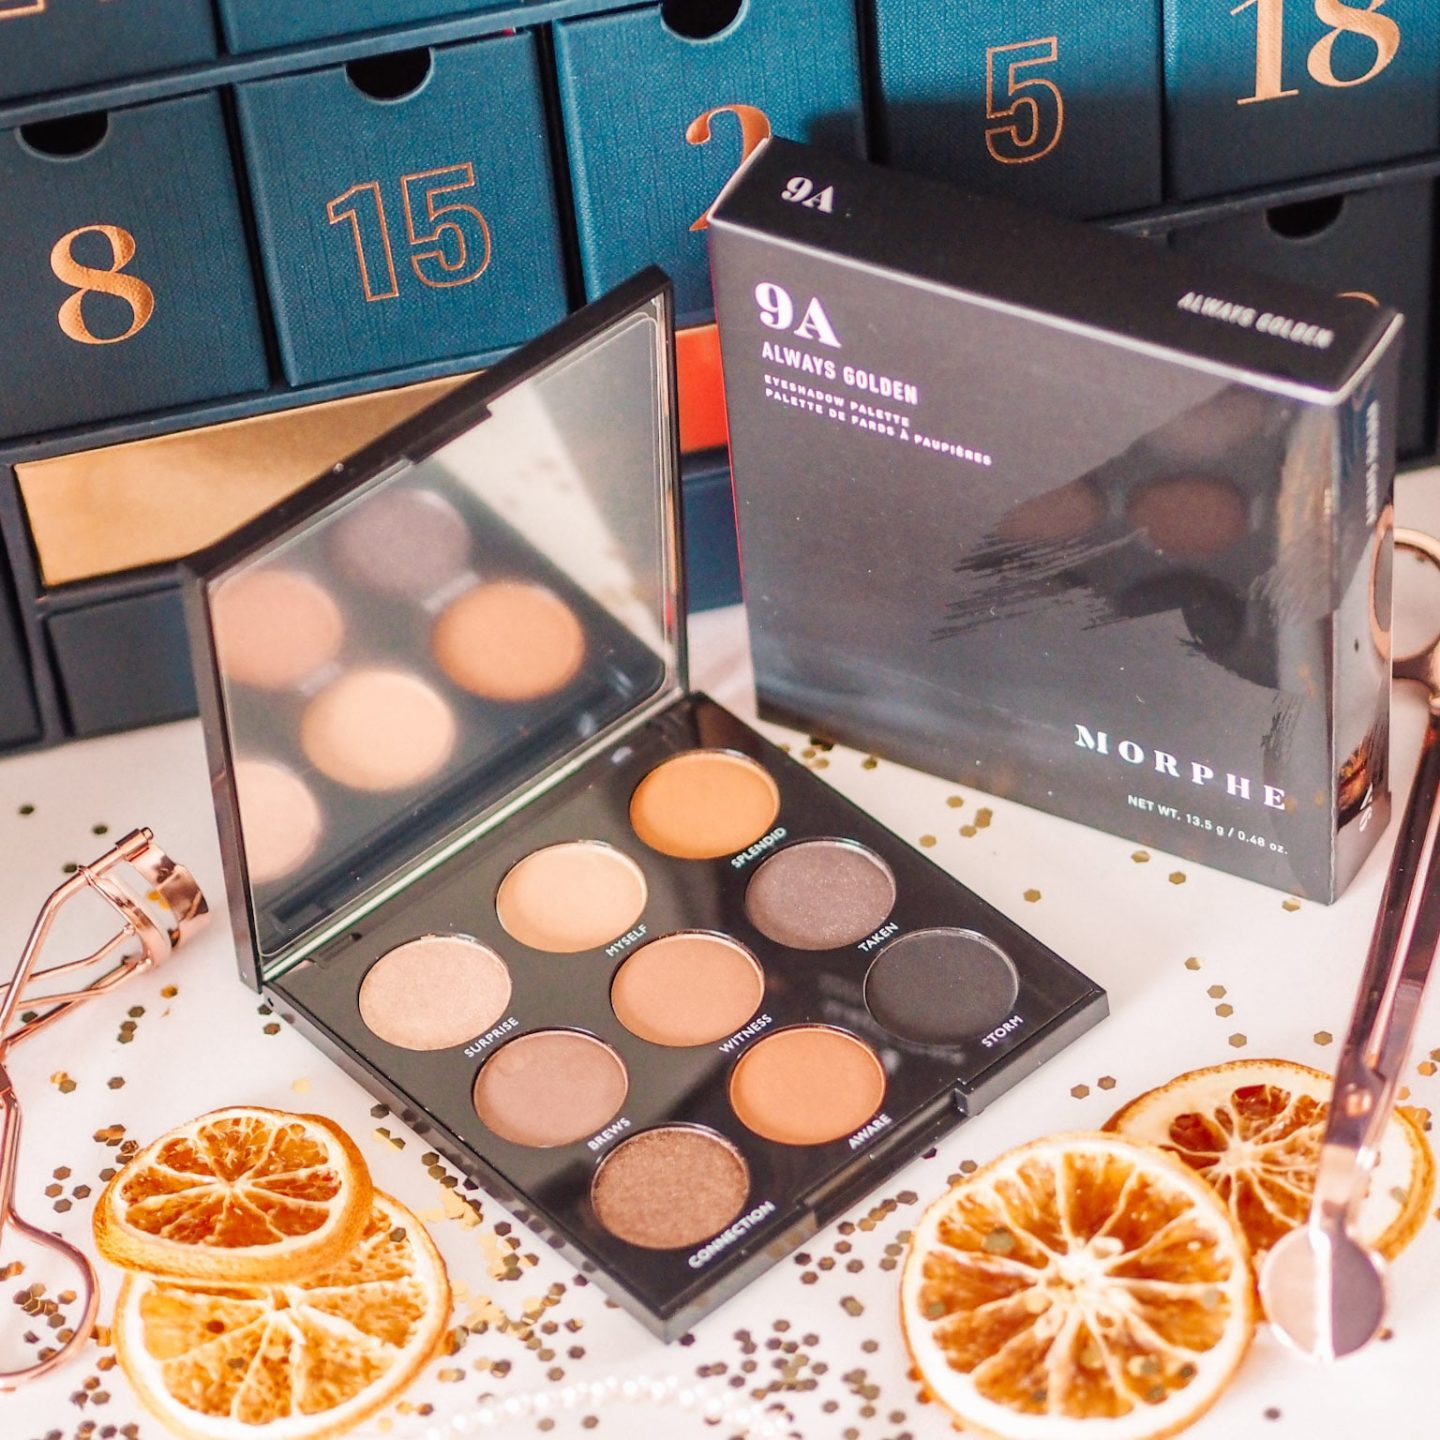 Morphe 9A Always Golden Palette